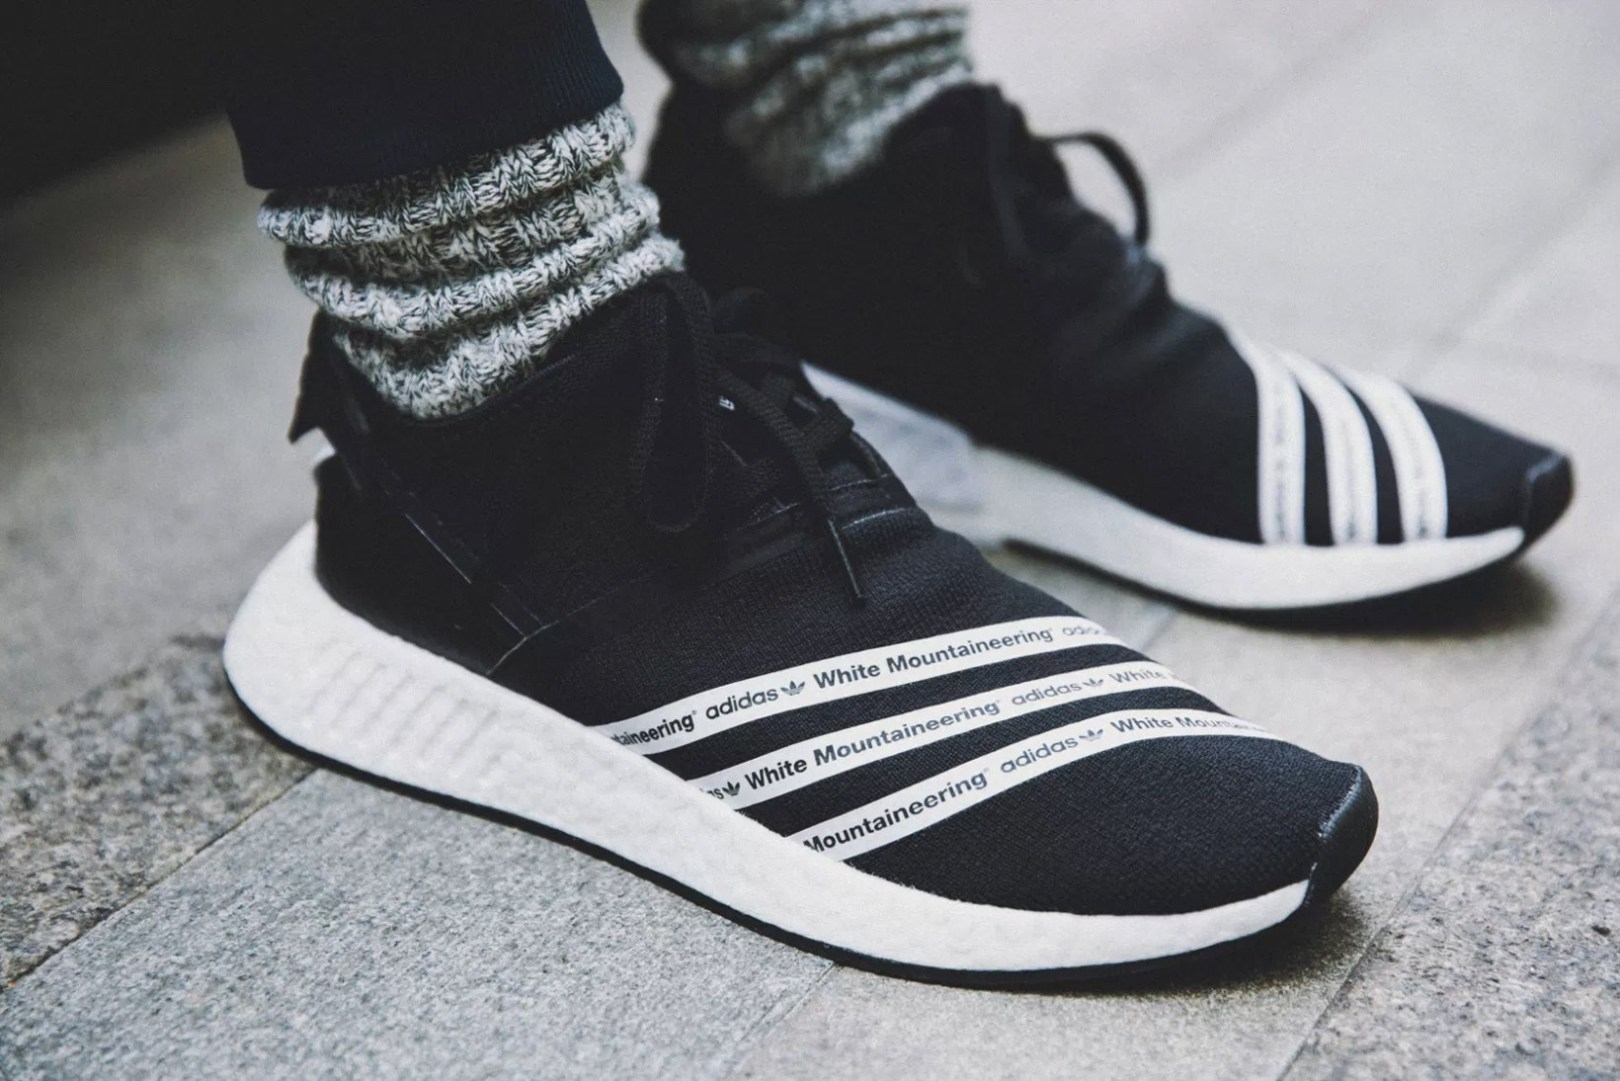 26cdcf55117e White Mountaineering and adidas Originals Are Releasing an Entire